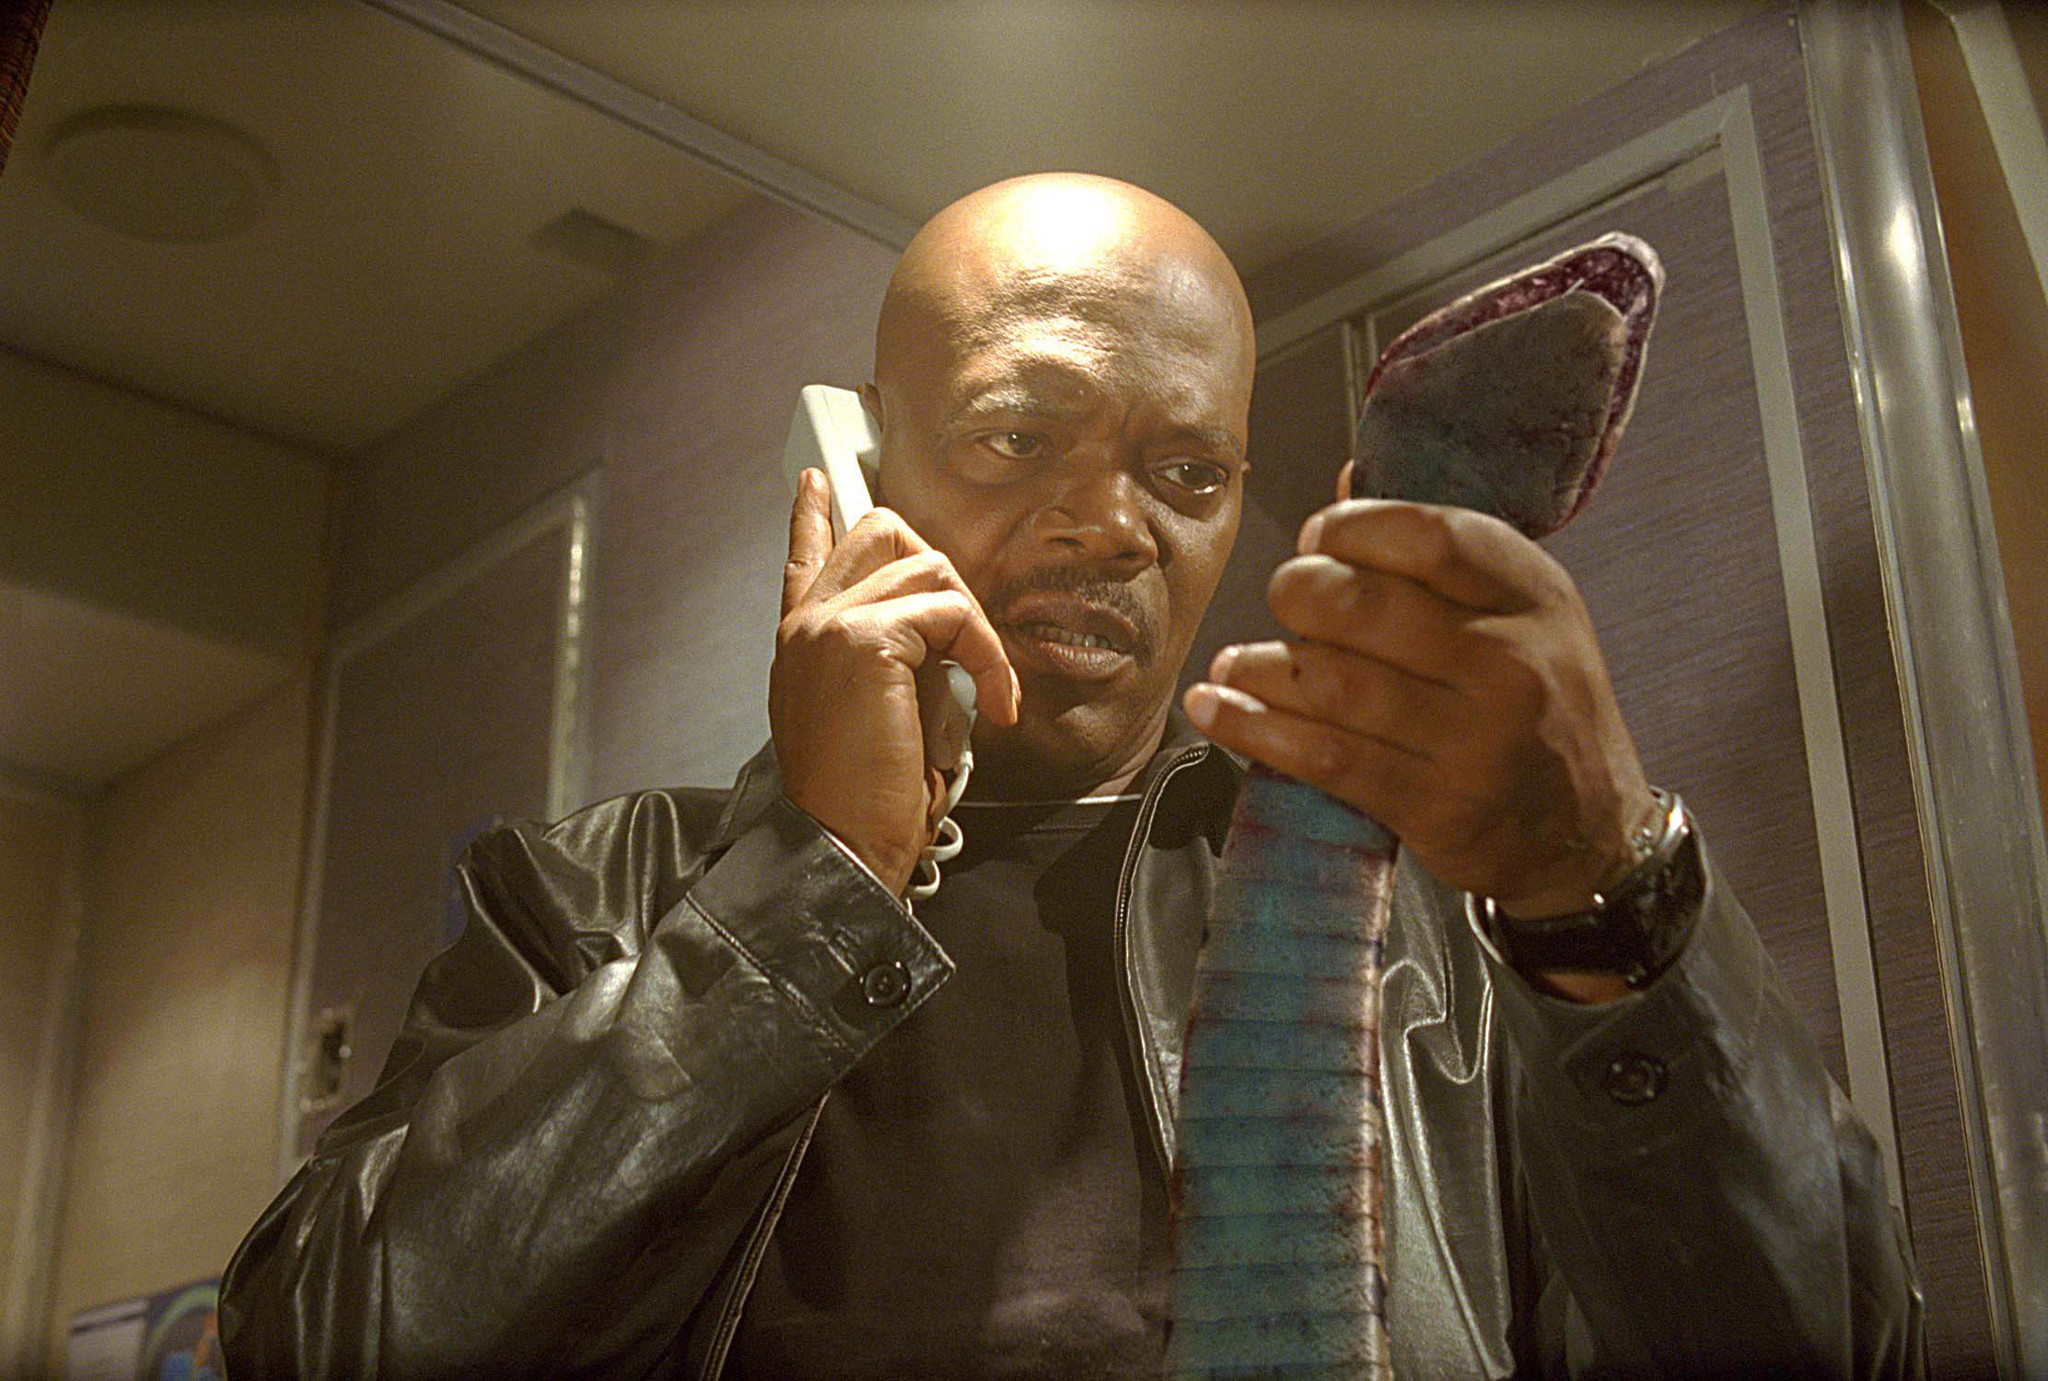 """I've had it with these motherfucking snakes on this motherfucking plane!"" - Samuel L. Jackson in Snakes on a Plane (2006)"